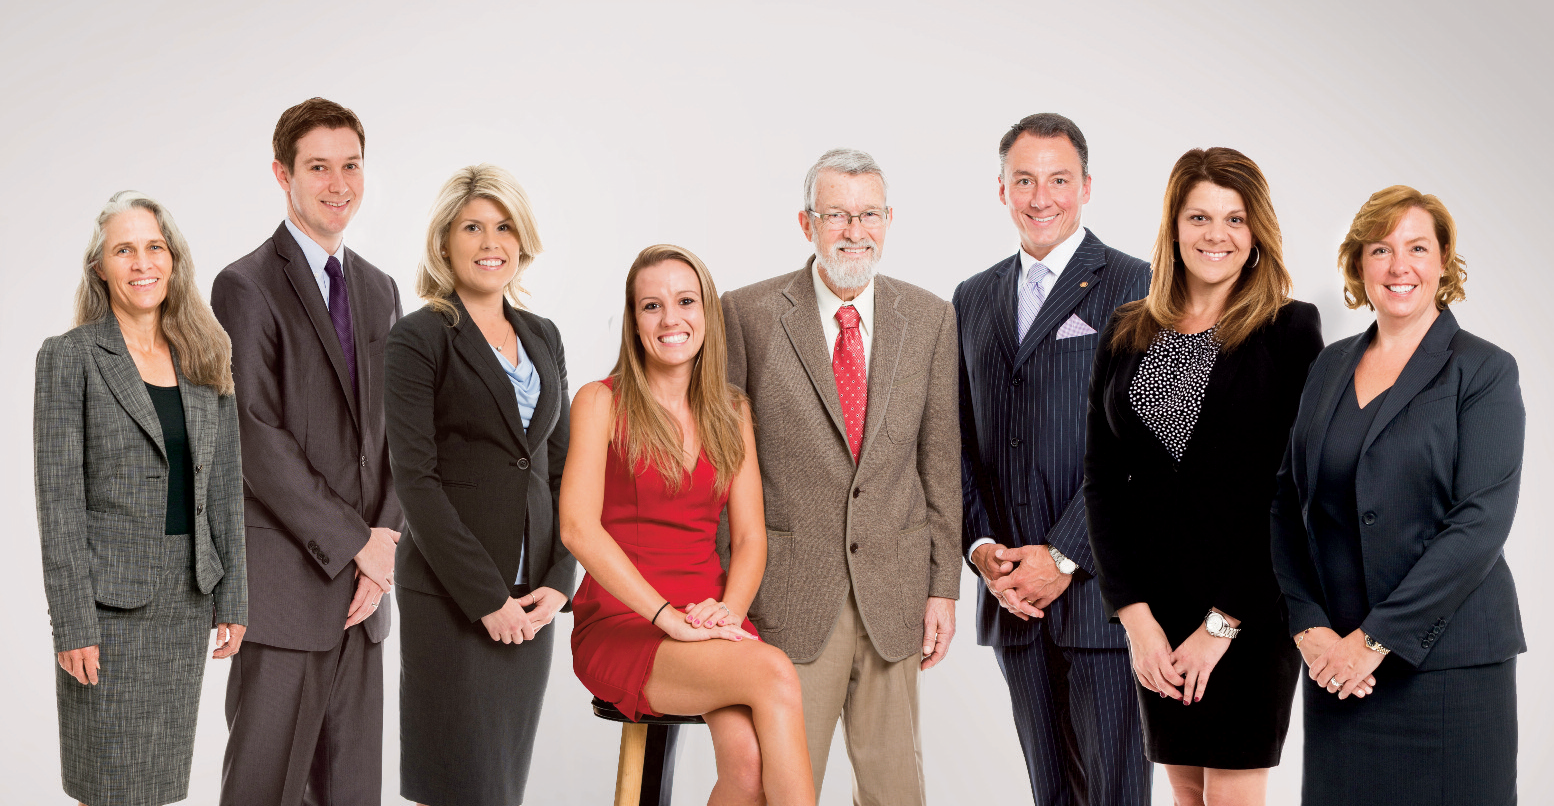 Updated image of staff with the divorce law firm at Fletcher and Phillips in Jacksonville, FL